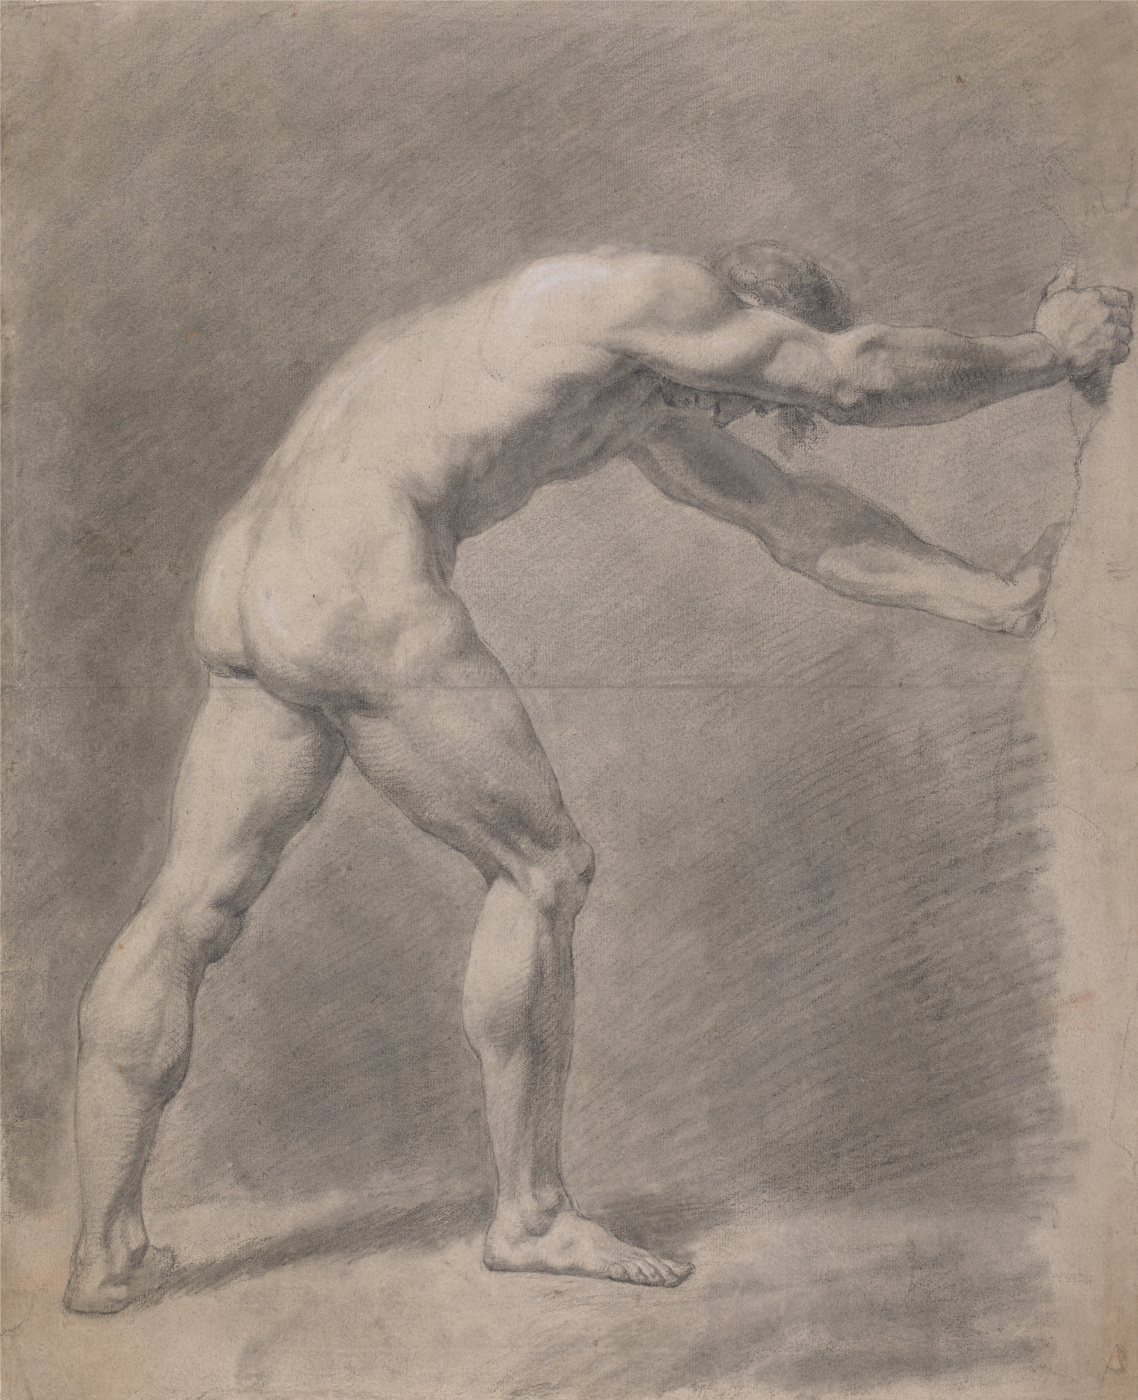 John Constable. A naked man pressed against the wall